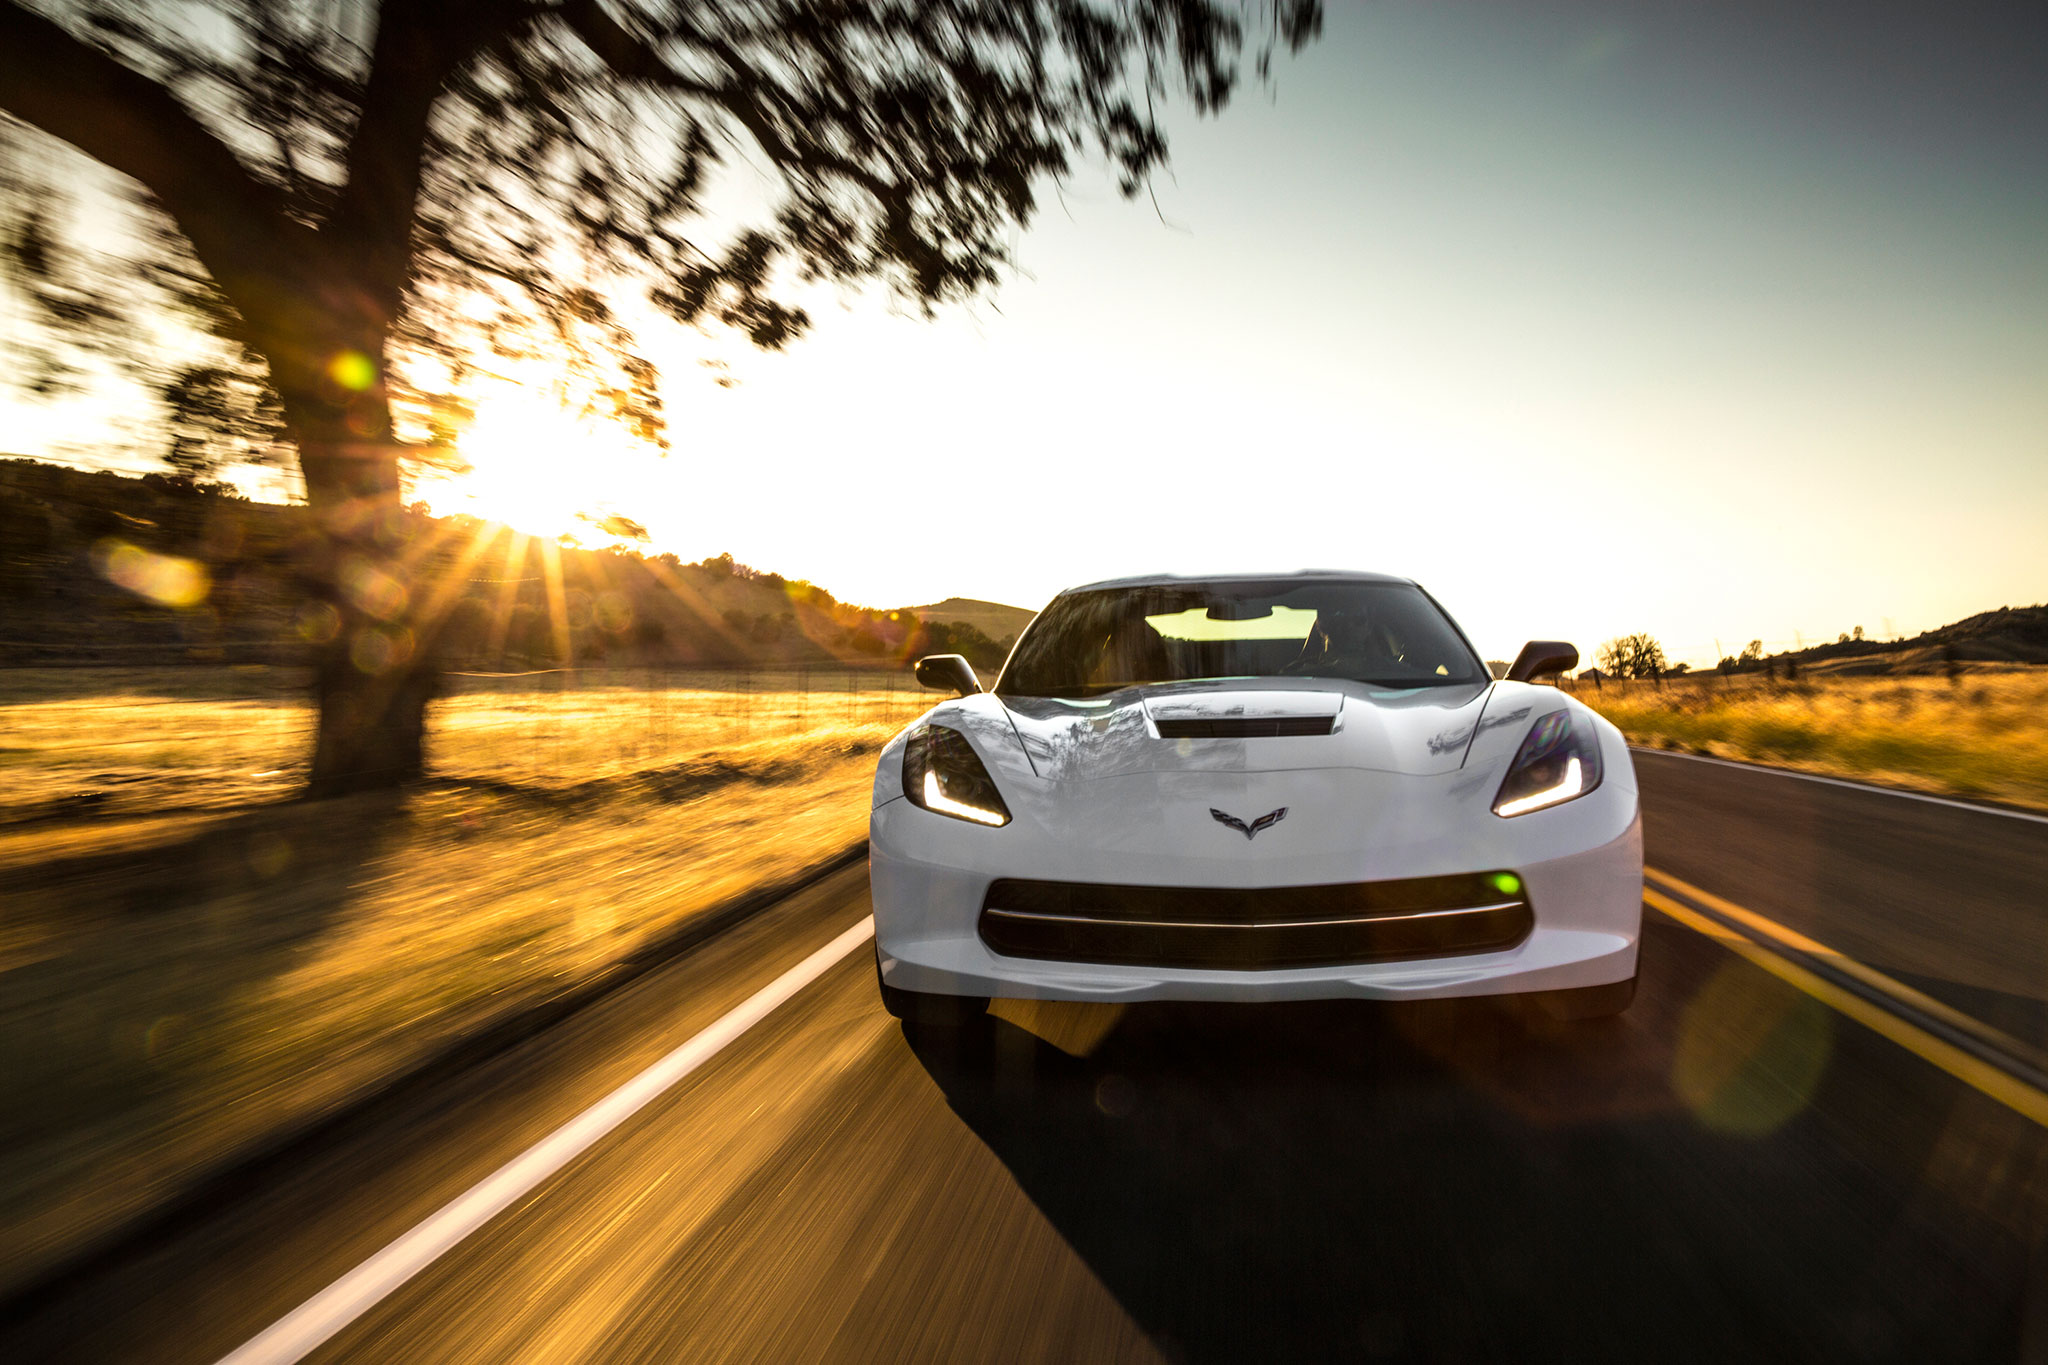 2014 Chevrolet Corvette Stingray Profile Front In Motion1